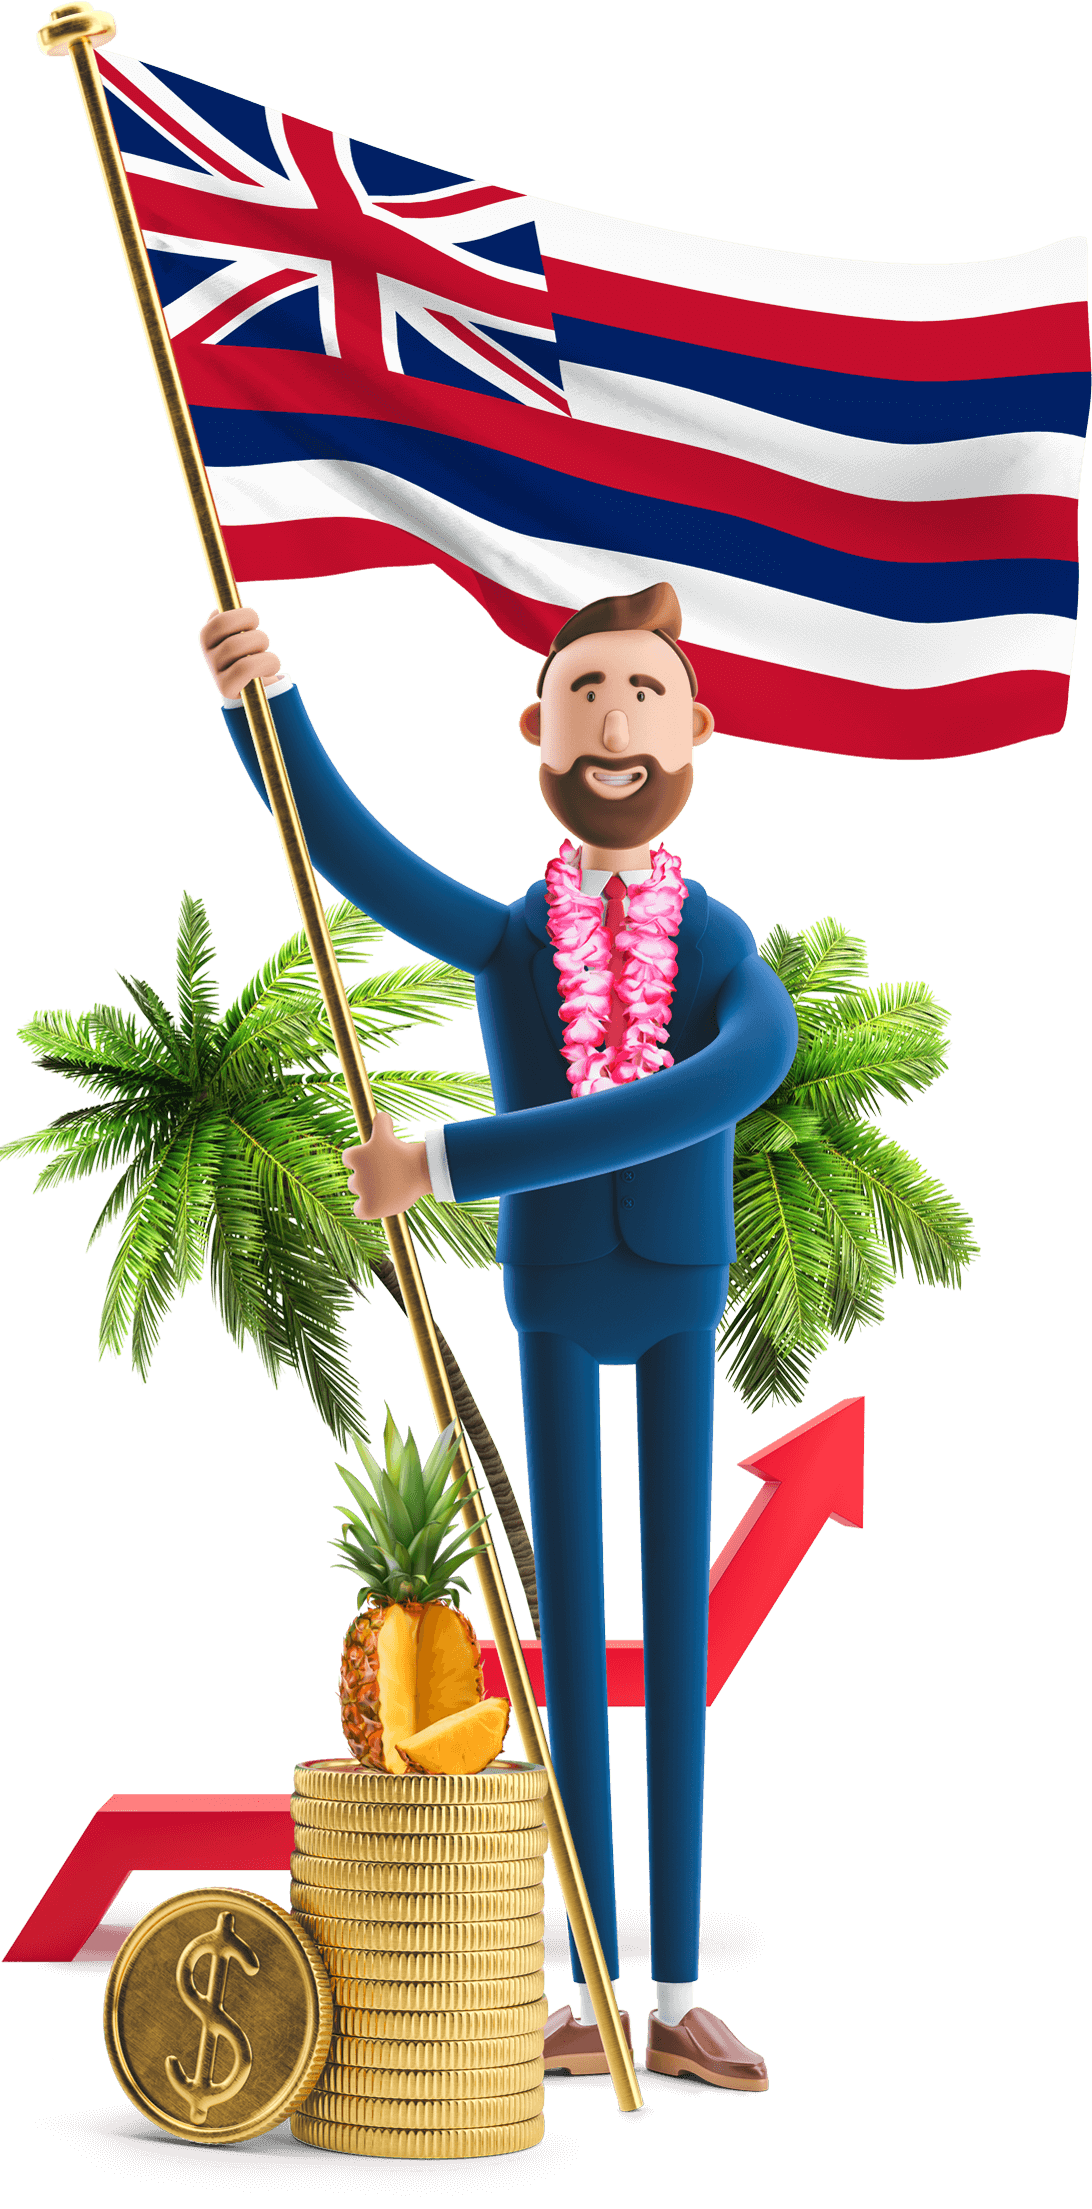 Hawaii flag held by MetCredit USA businessman who's wearing a lei and standing in front of some palm trees. A pineapple is sitting on a stack of oversized coins